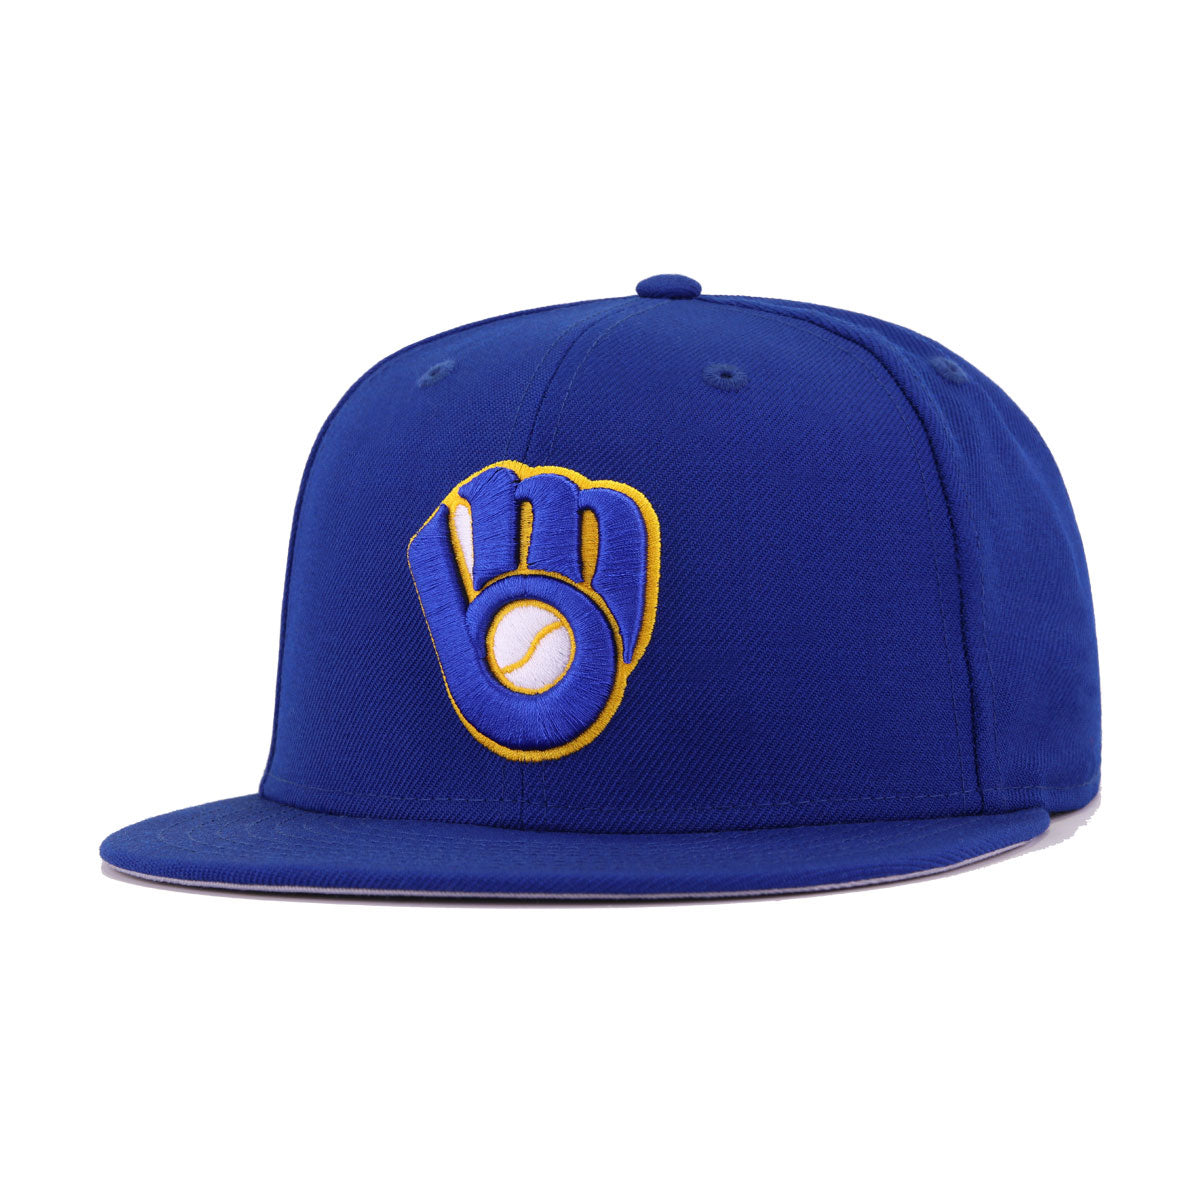 Milwaukee Brewers Light Royal Blue Cooperstown New Era 59Fifty Fitted